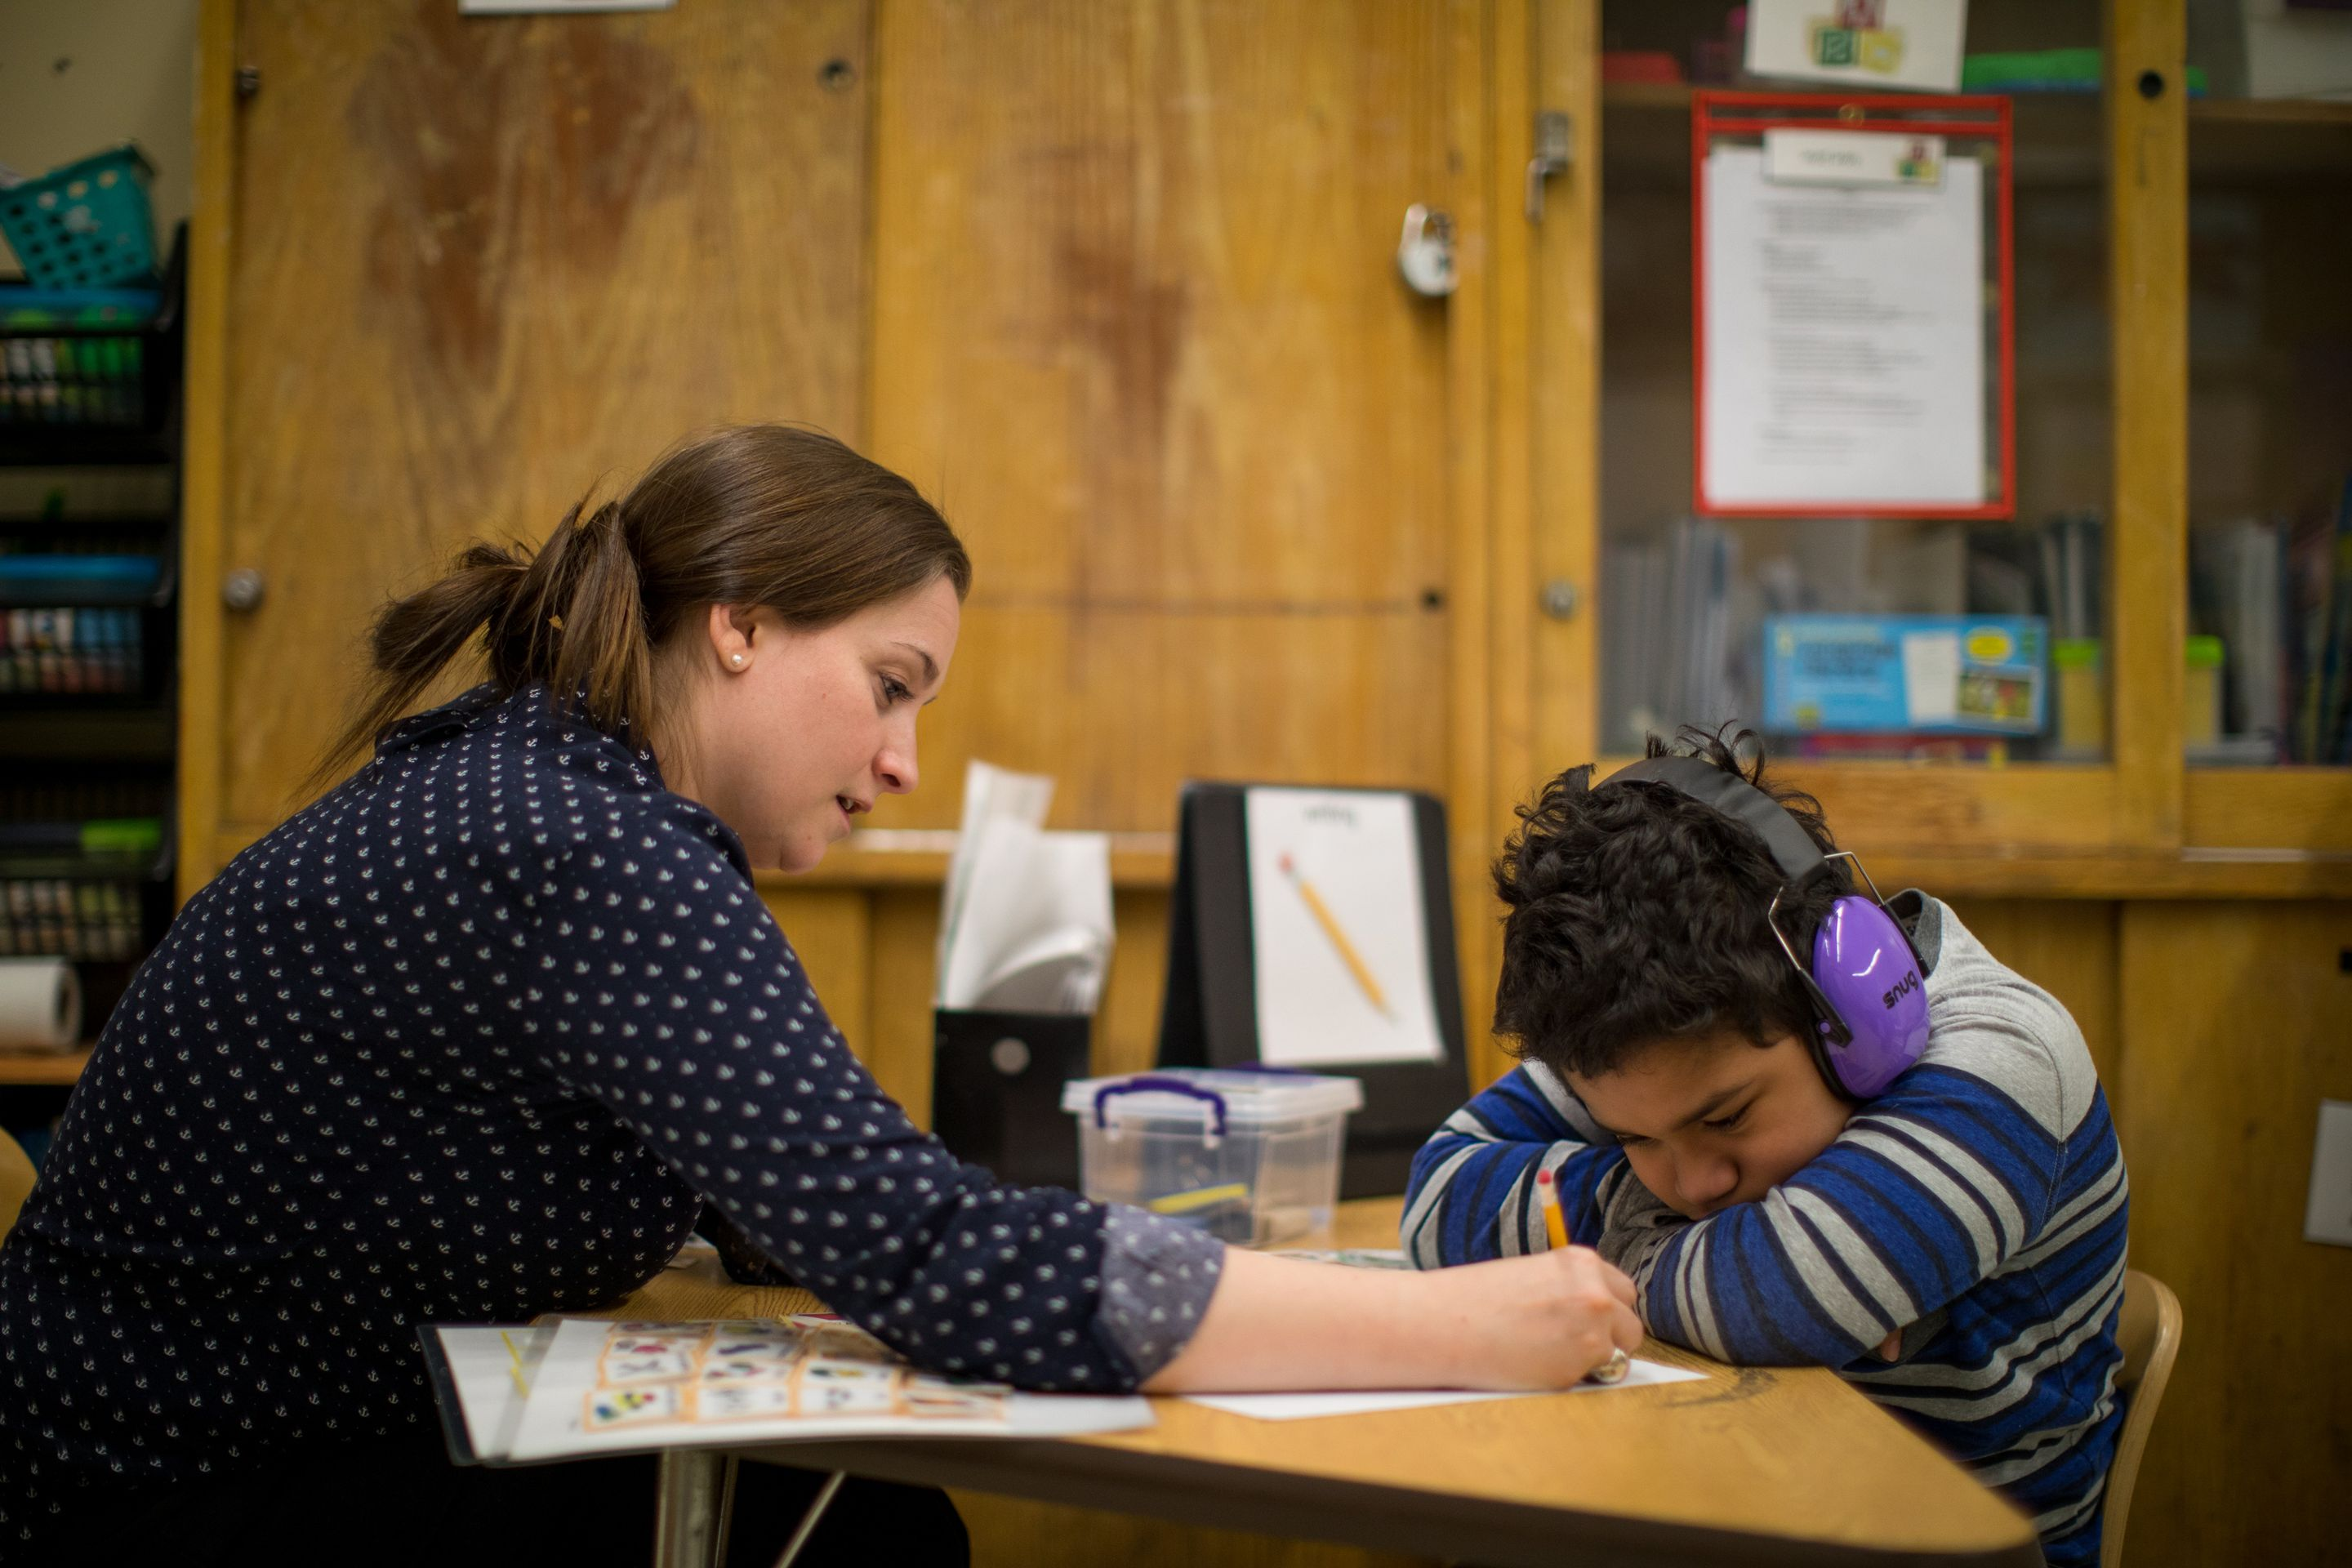 Teacher Katie Papaccioli works with an autistic student who wears noise-canceling headphones due to sound sensitivities.